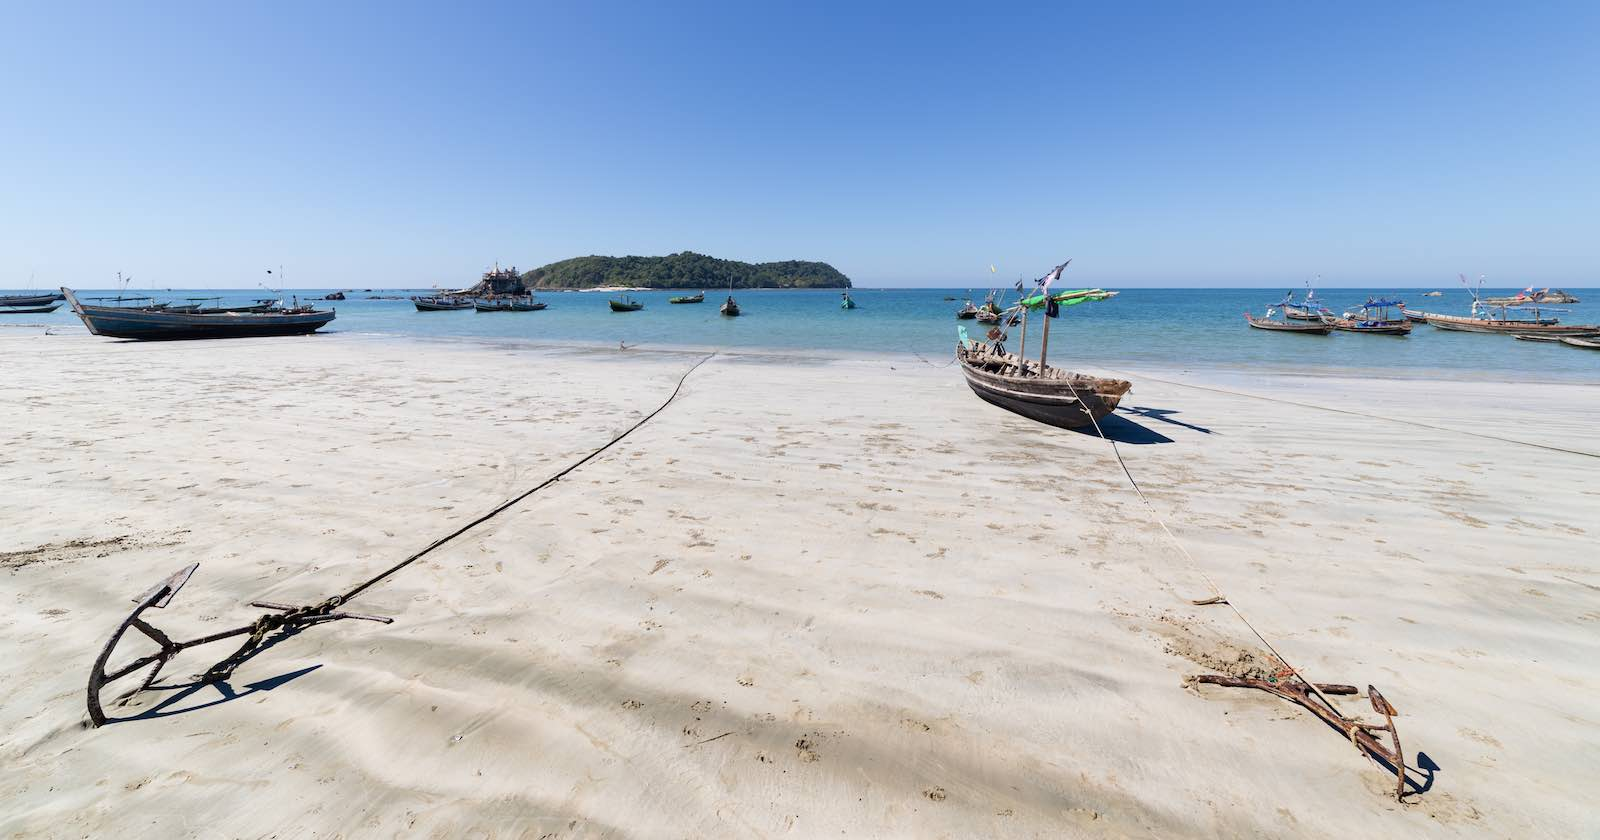 Myanmar's coastline stretches over more than 1900 km (Photo: nmessana via Getty Images)